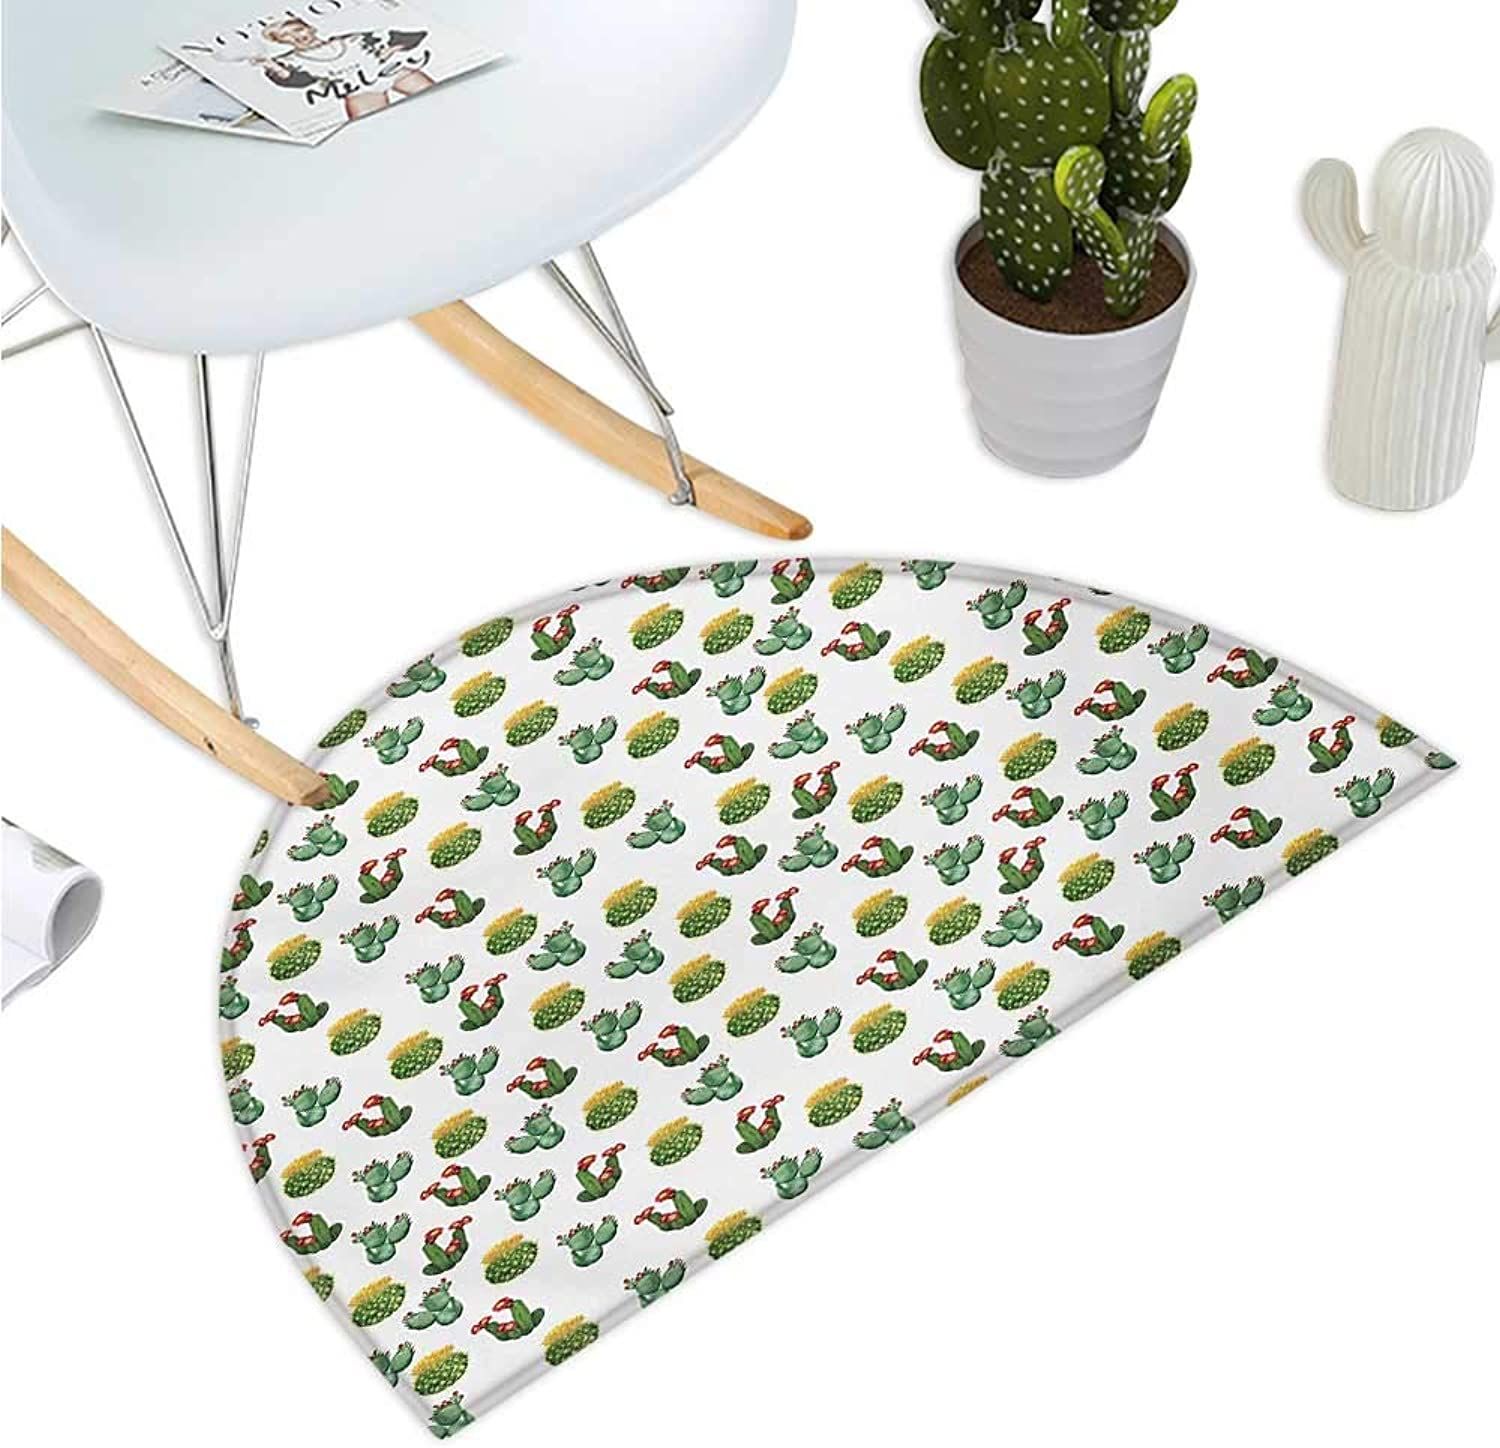 Plants Semicircle Doormat Floral Theme Watercolor Style Effect Illustration of Cactus and Suculent Prints Entry Door Mat H 39.3  xD 59  Green Yellow